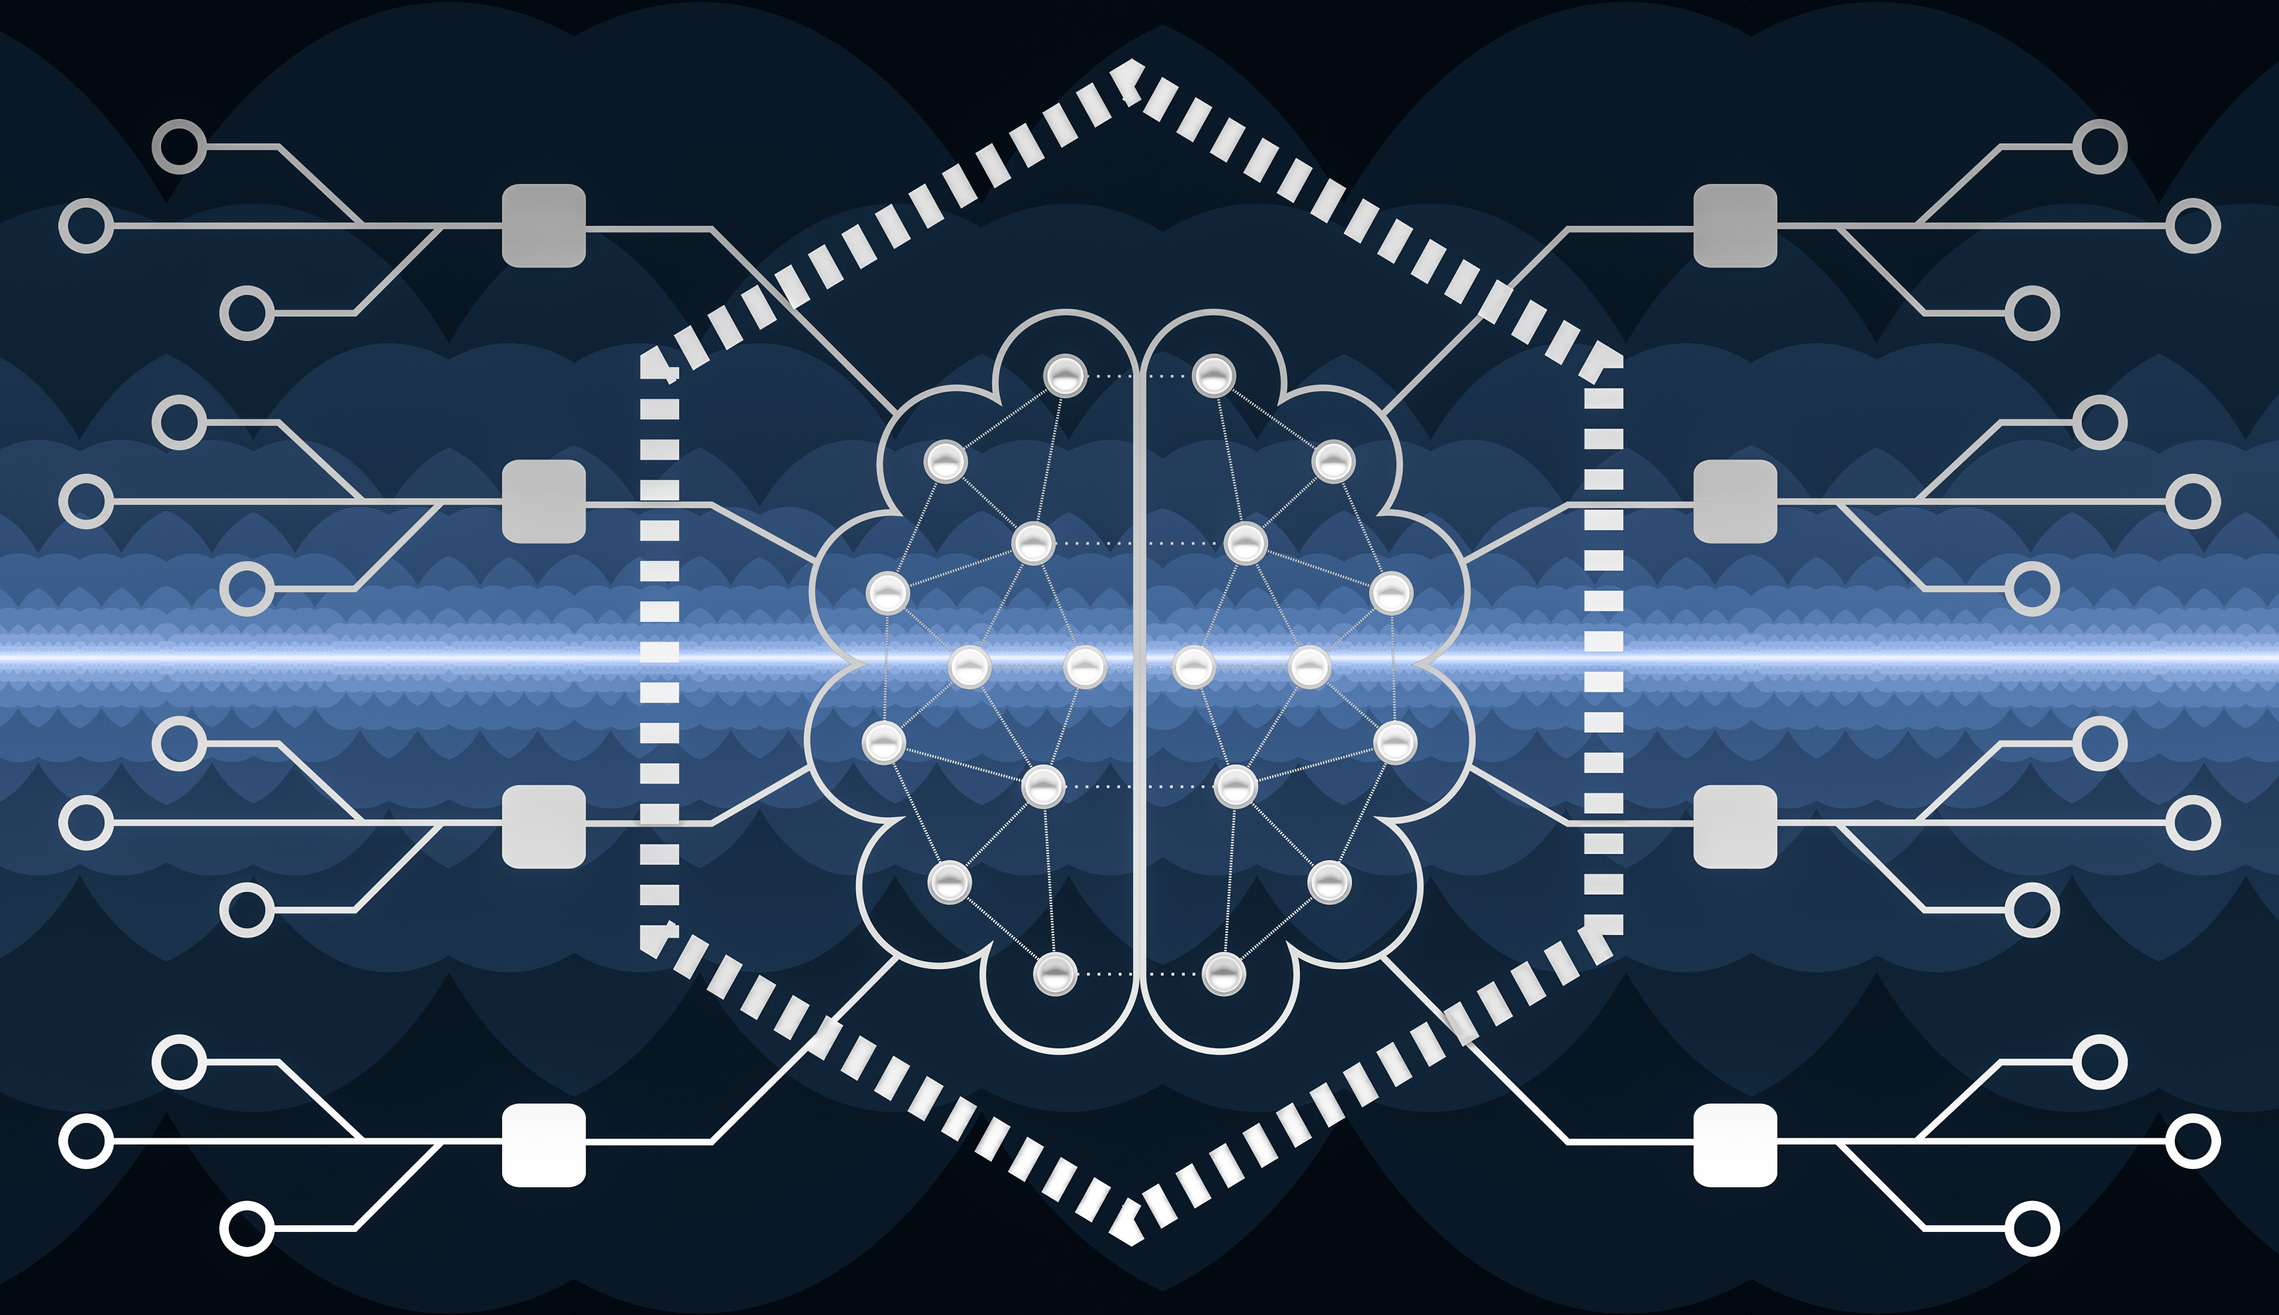 Scientists Use Ai To Develop Better >> Scientists Plan To Develop New Ai Hardware Capable Of Thinking